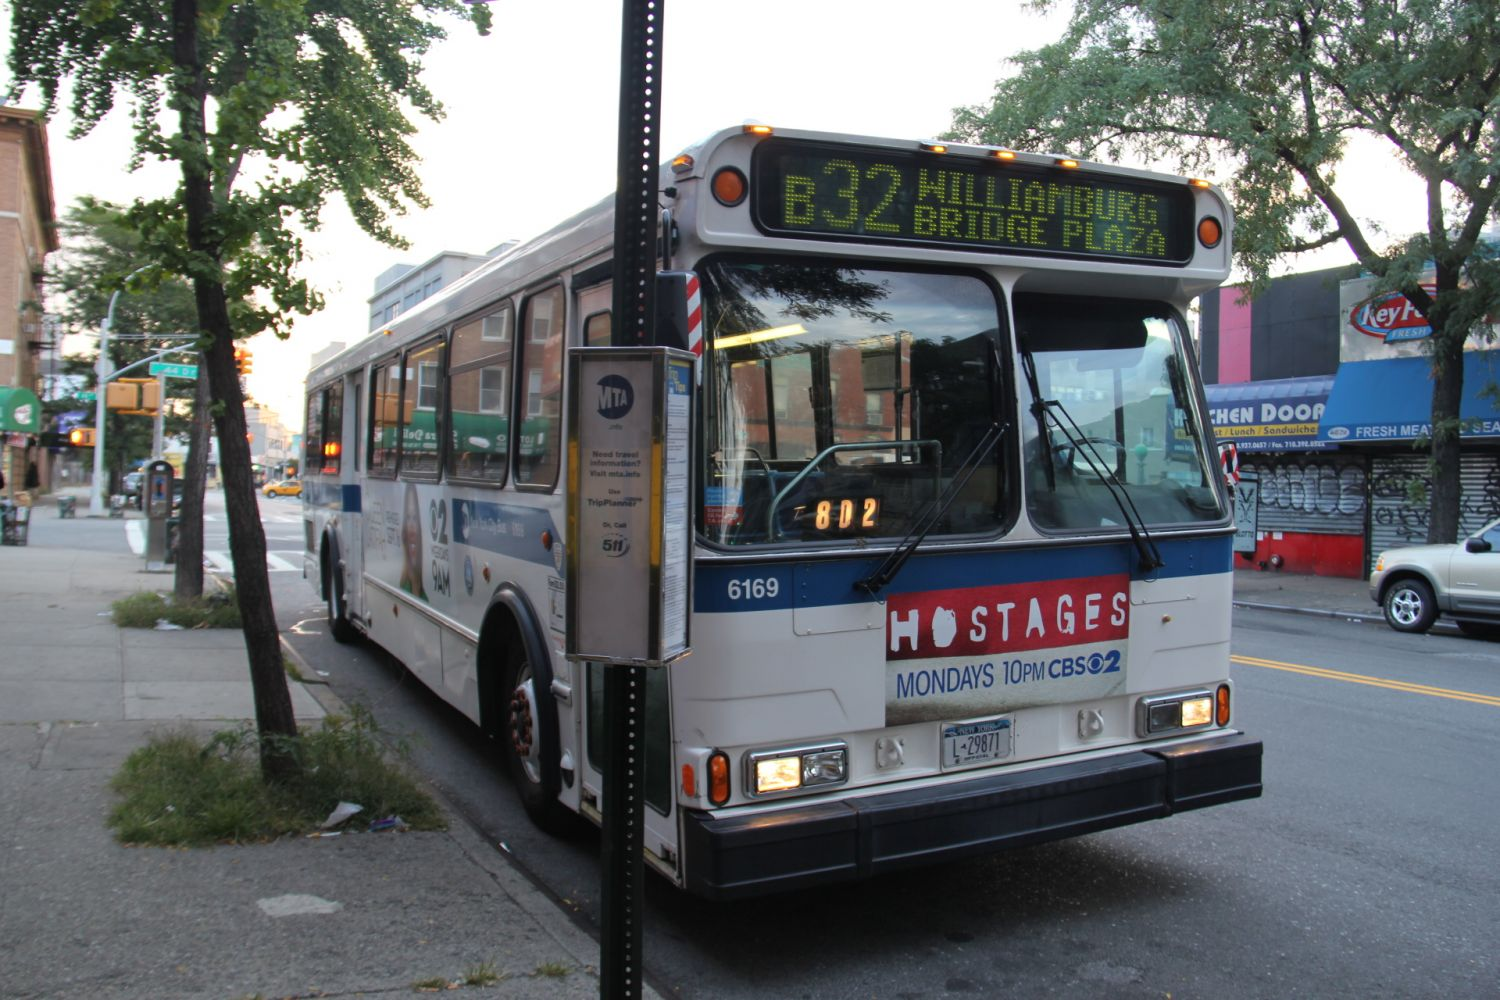 1999 Orion V #6169 B32 at 21st Street and 44th Drive